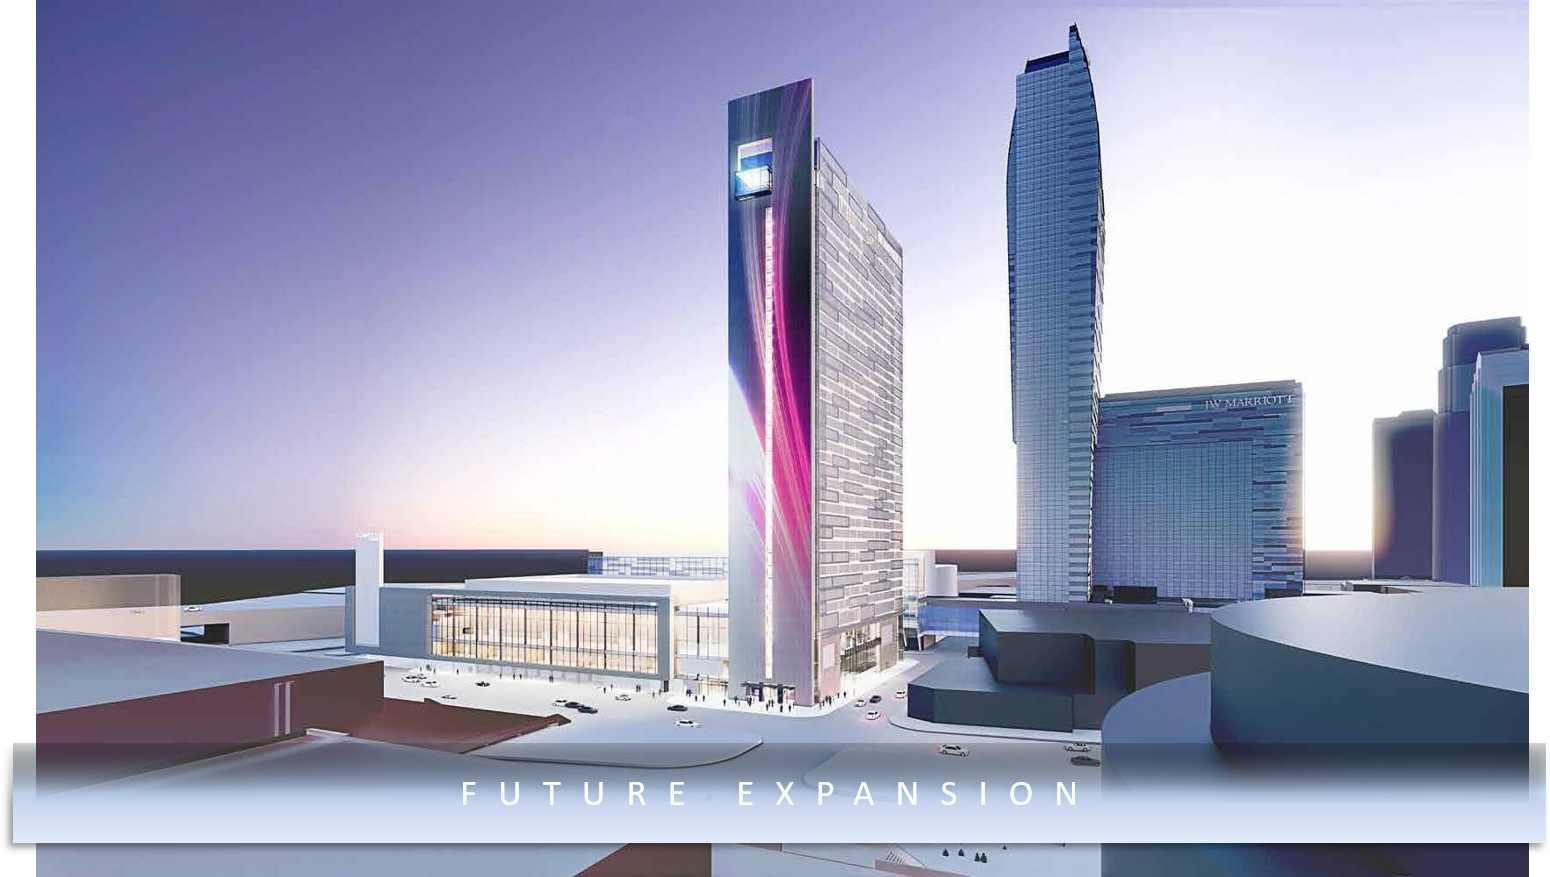 A rendering of the expansion of the JW Marriott LA LIVE hotel